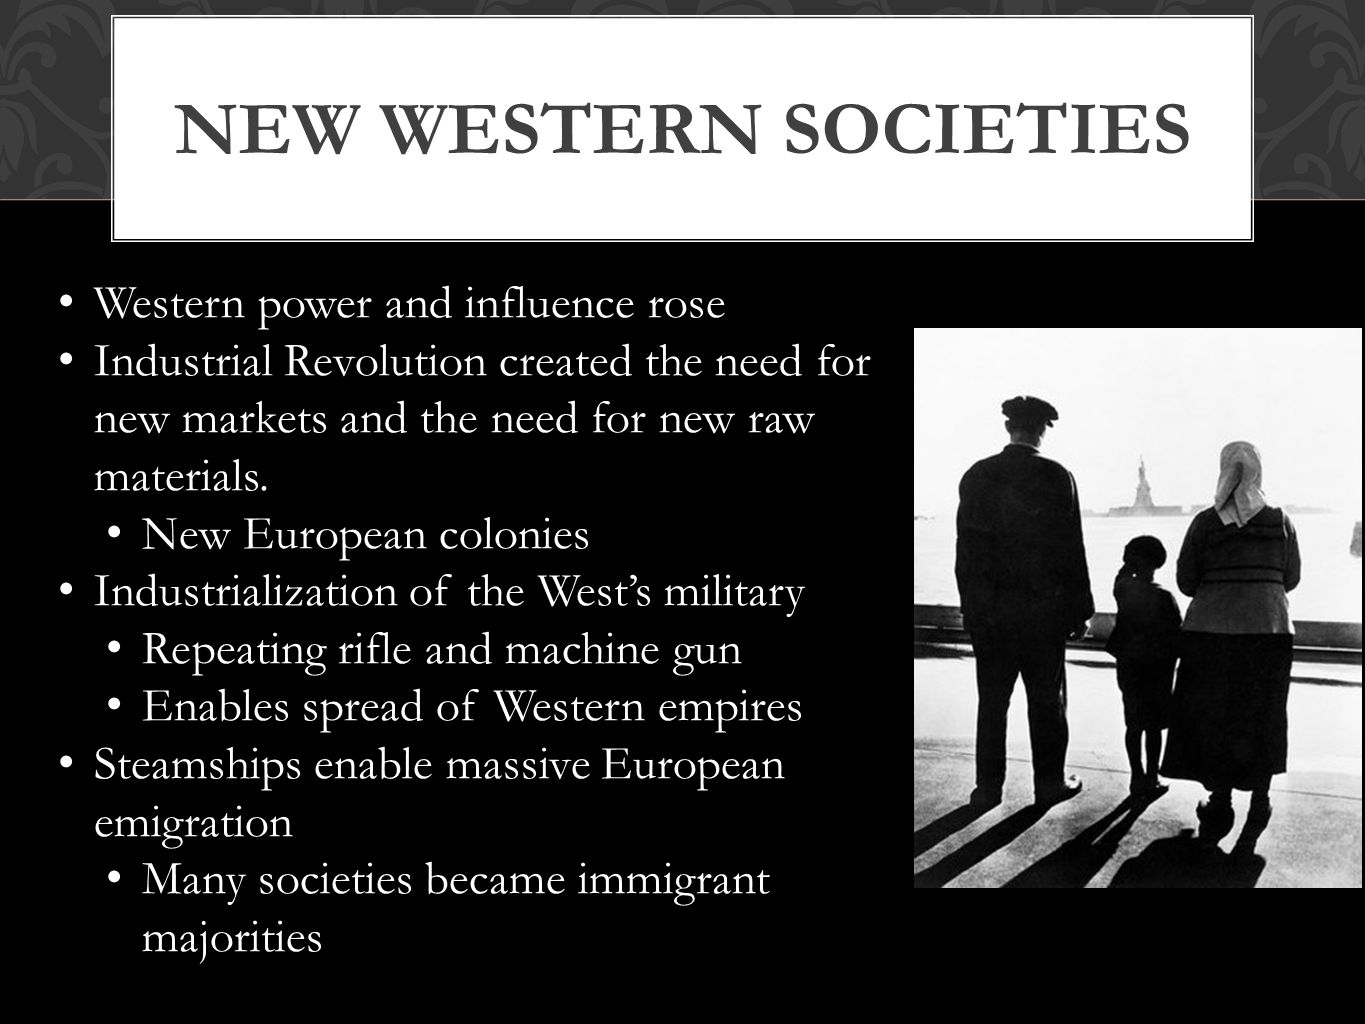 industrial revolution s impact on western civilization Western civilization on the industrial revolution and abolition of slavery western civilization week 16 essay western civilization- education in england and classical liberalism.